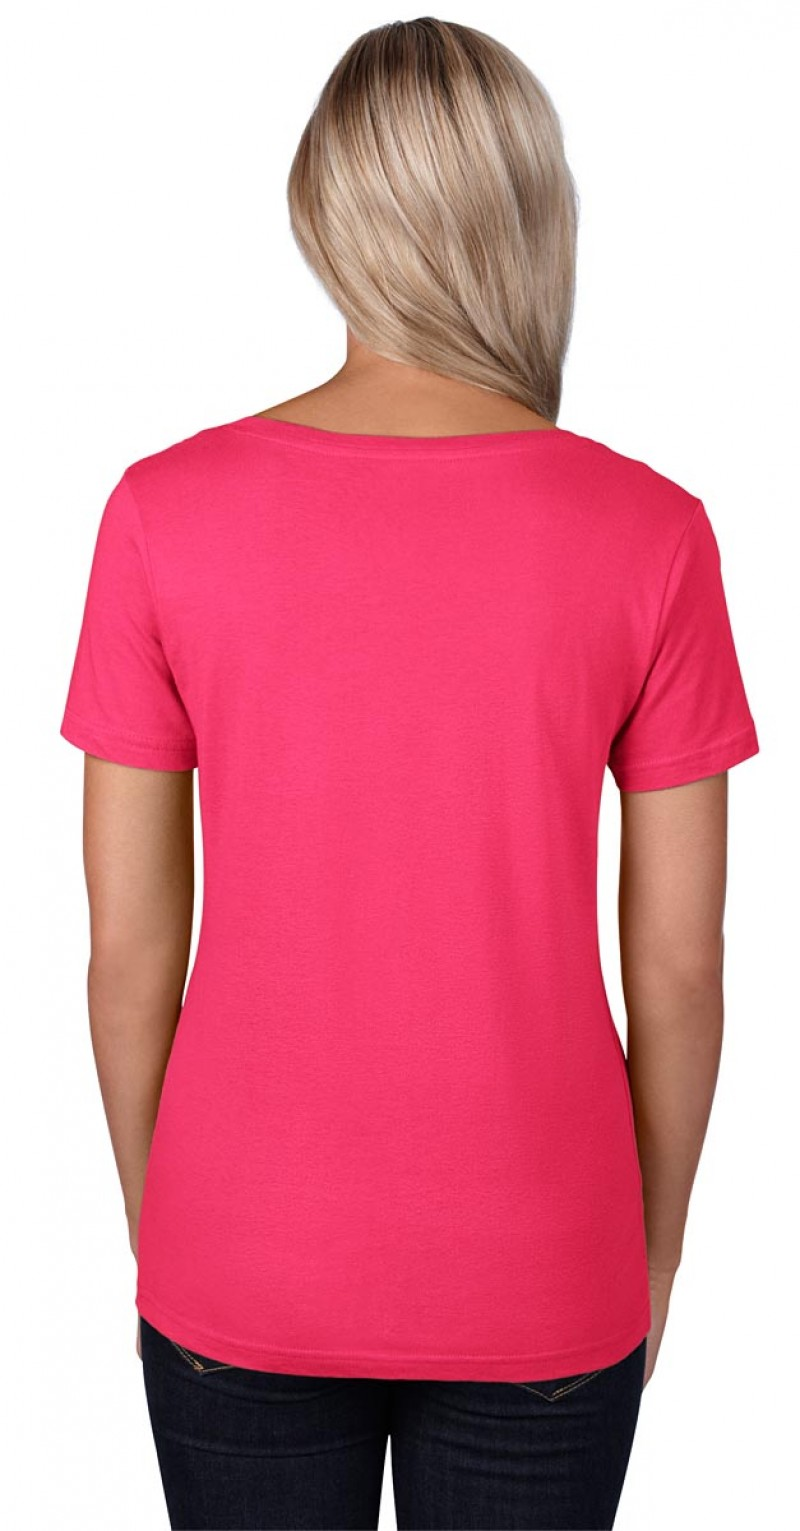 Anvil T-Shirt - Sheer Scoop - Hot Pink